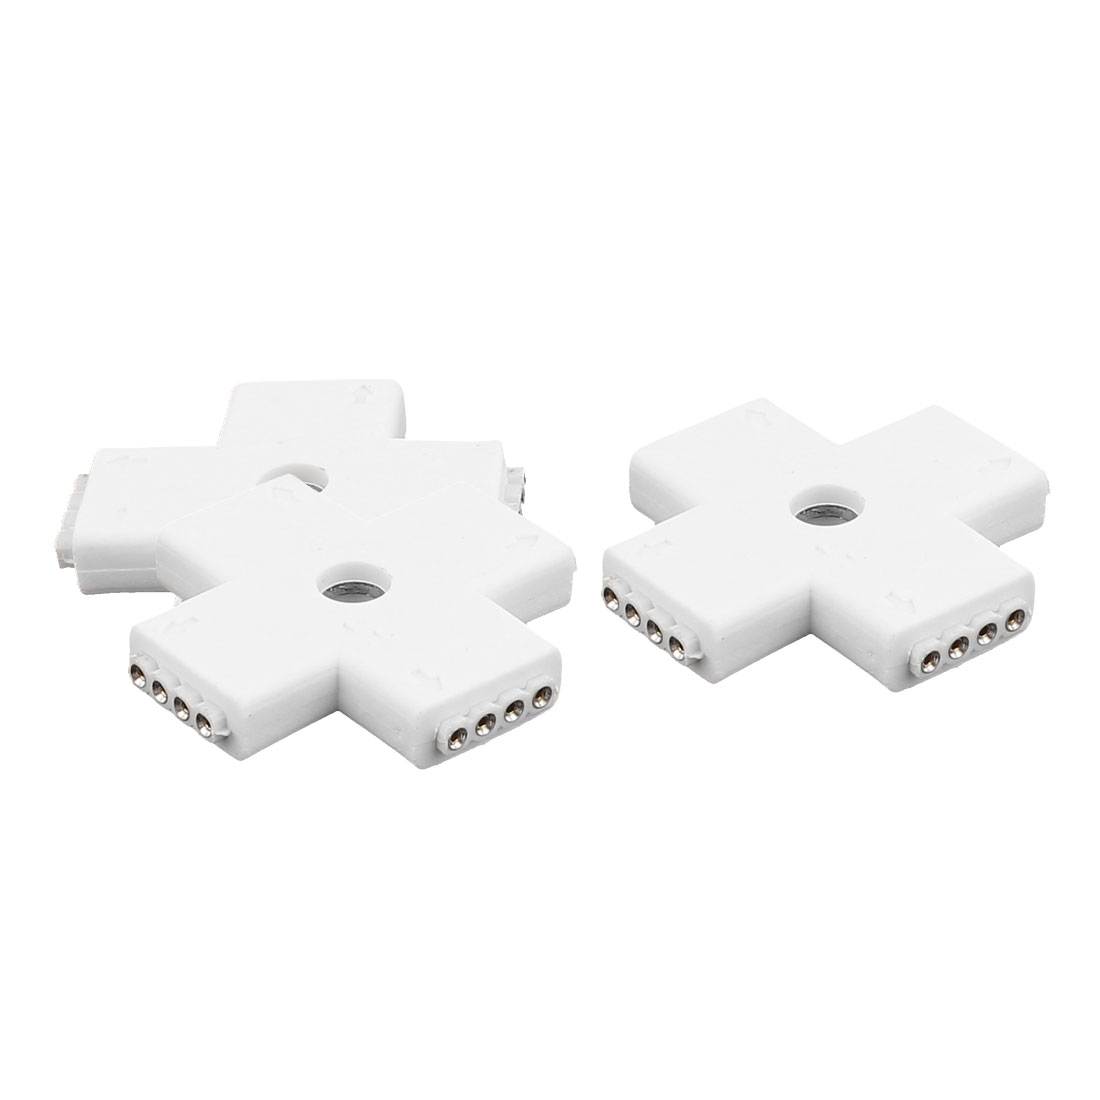 3 Pcs Cross Shape 4 Way 4P Female Connector White for 5050 RGBW Led Strip Light